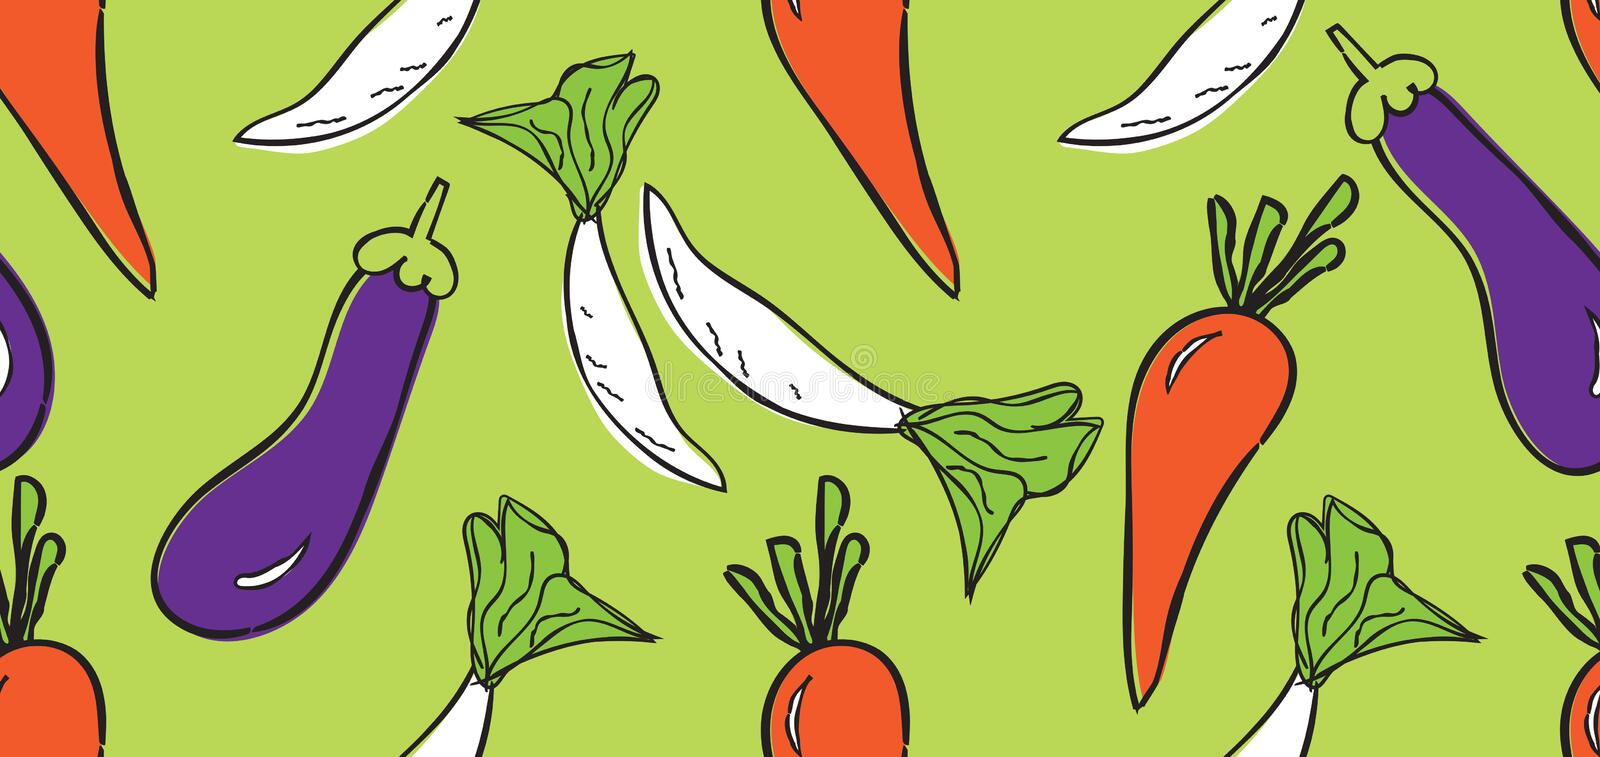 Vegetables seamless pattern, Vegetables banner template vector, web banner, web page, chili peppers, radish, Carrots, eggplants stock photo